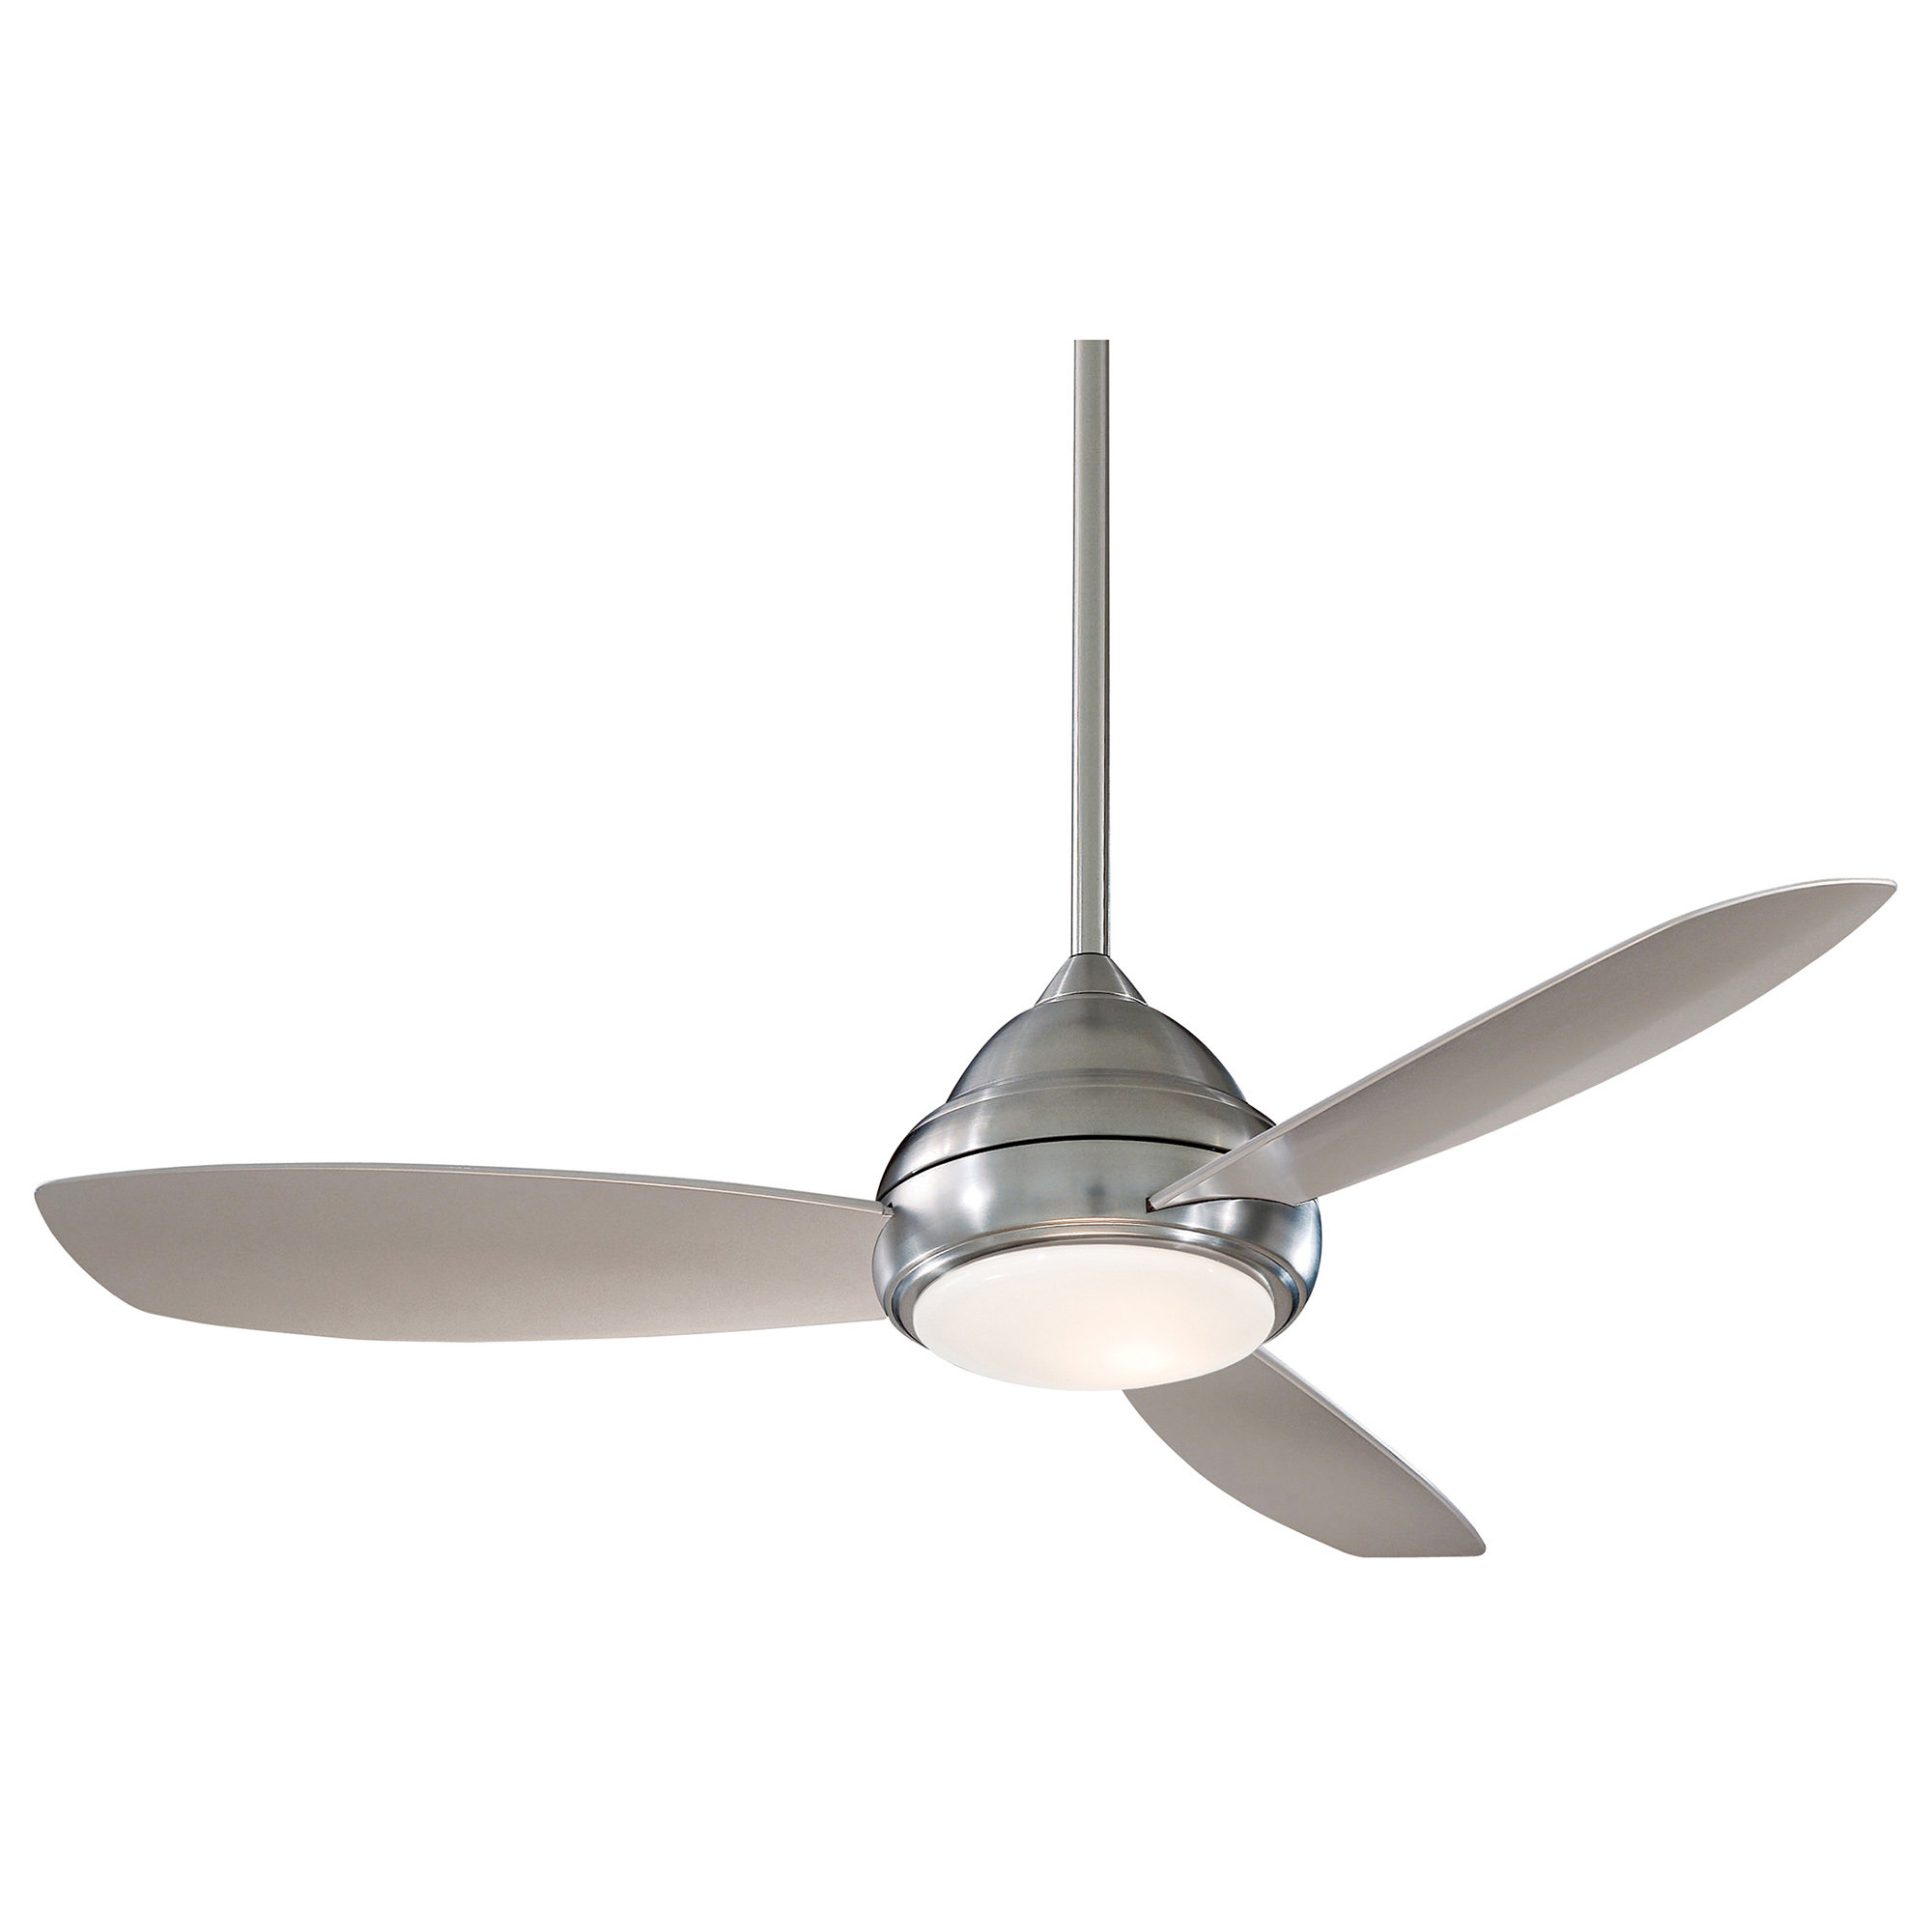 """52"""" Concept 3 Blade Ceiling Fan With Remote In Latest Acero Retro 3 Blade Led Ceiling Fans (View 3 of 20)"""